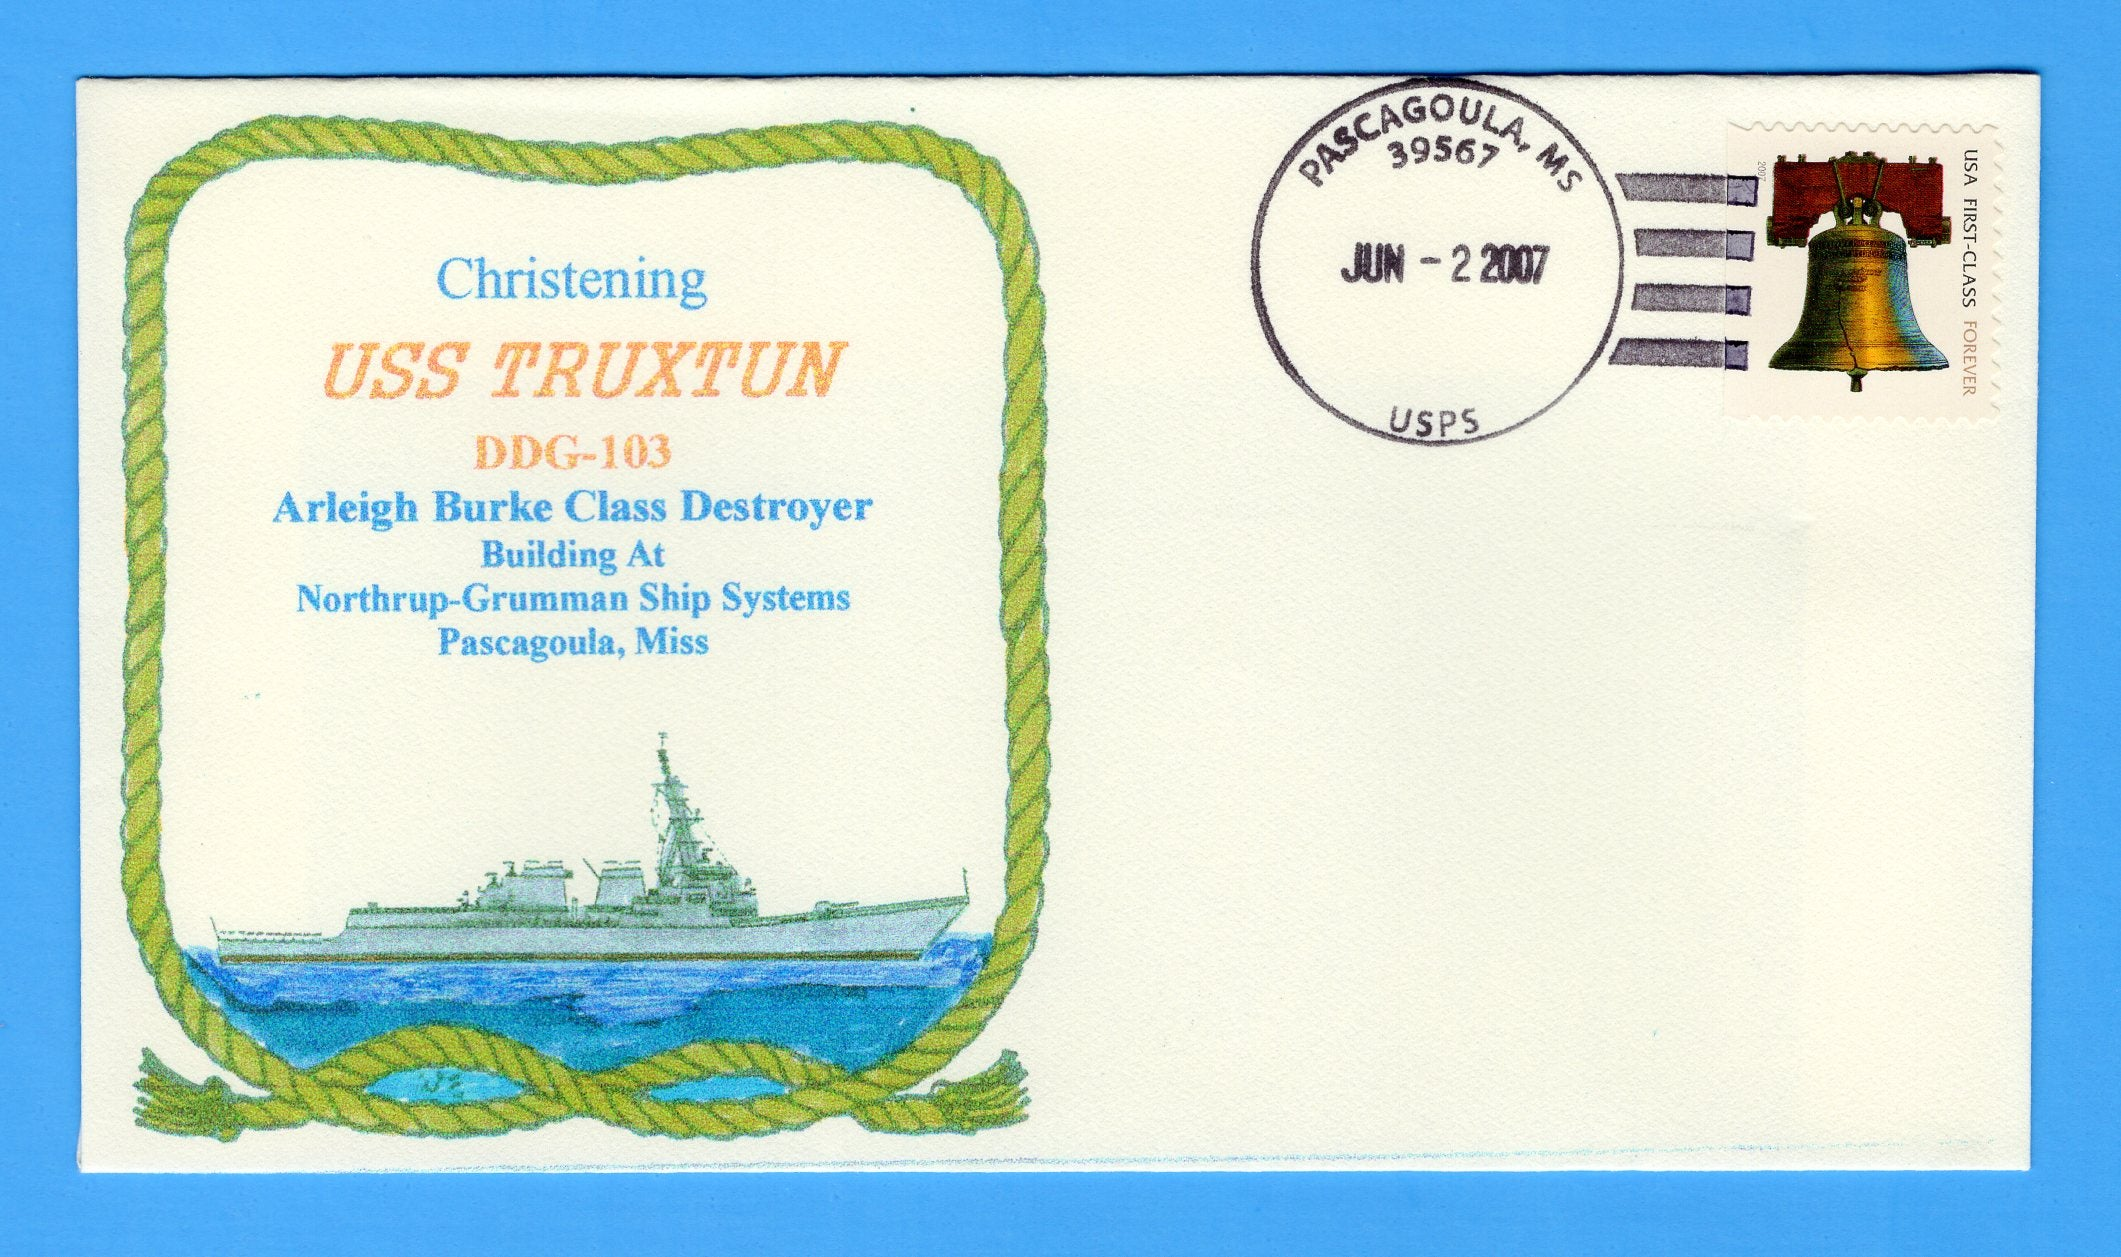 USS Truxton DDG-103 Christening June 2, 2007 - Bill Everett Cachet